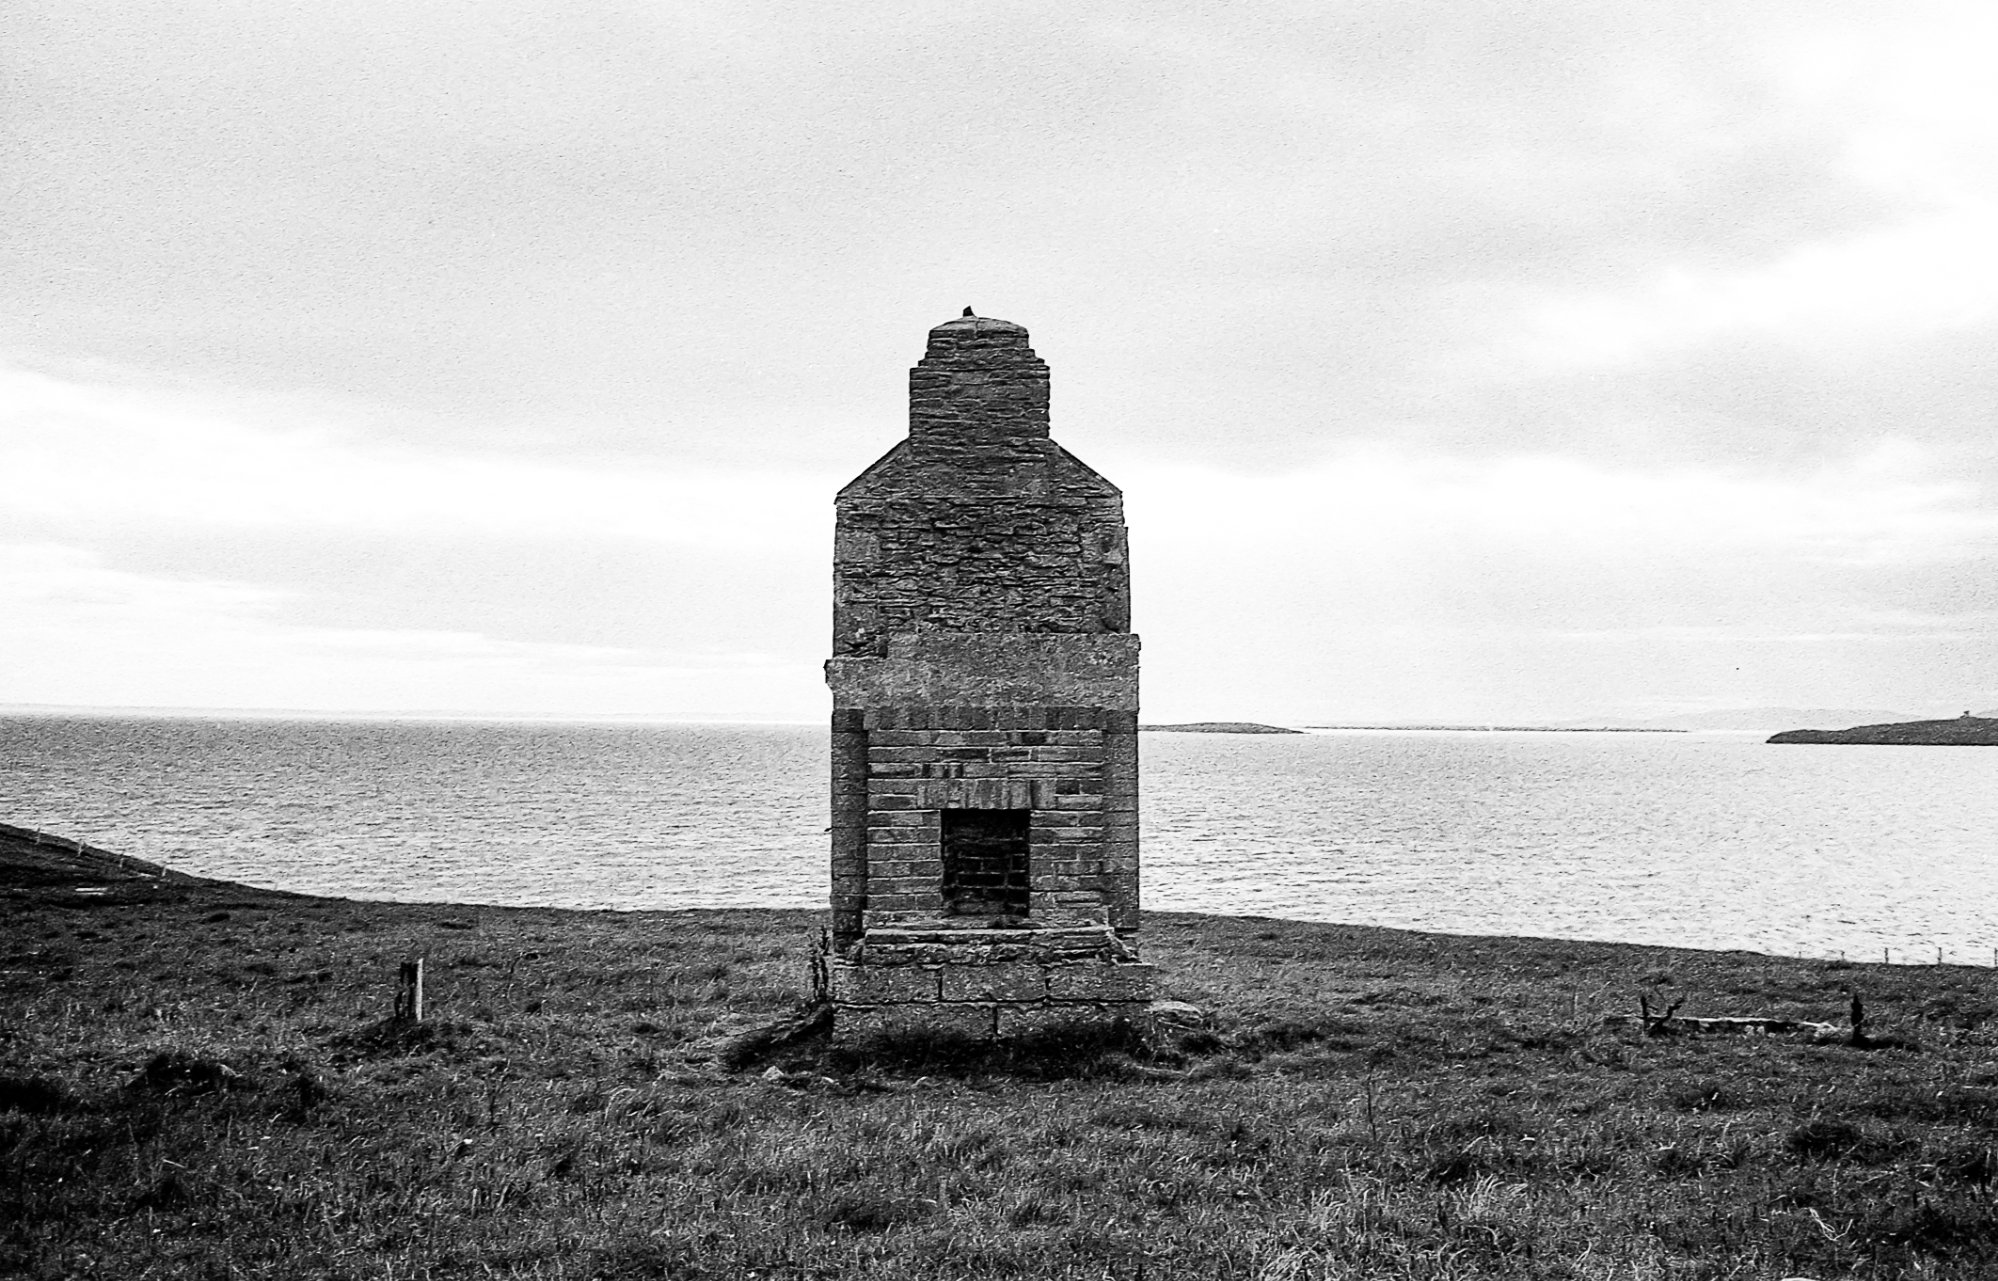 Wartime remains at Hoxa, South Ronaldsay - image by Sarah Wylie